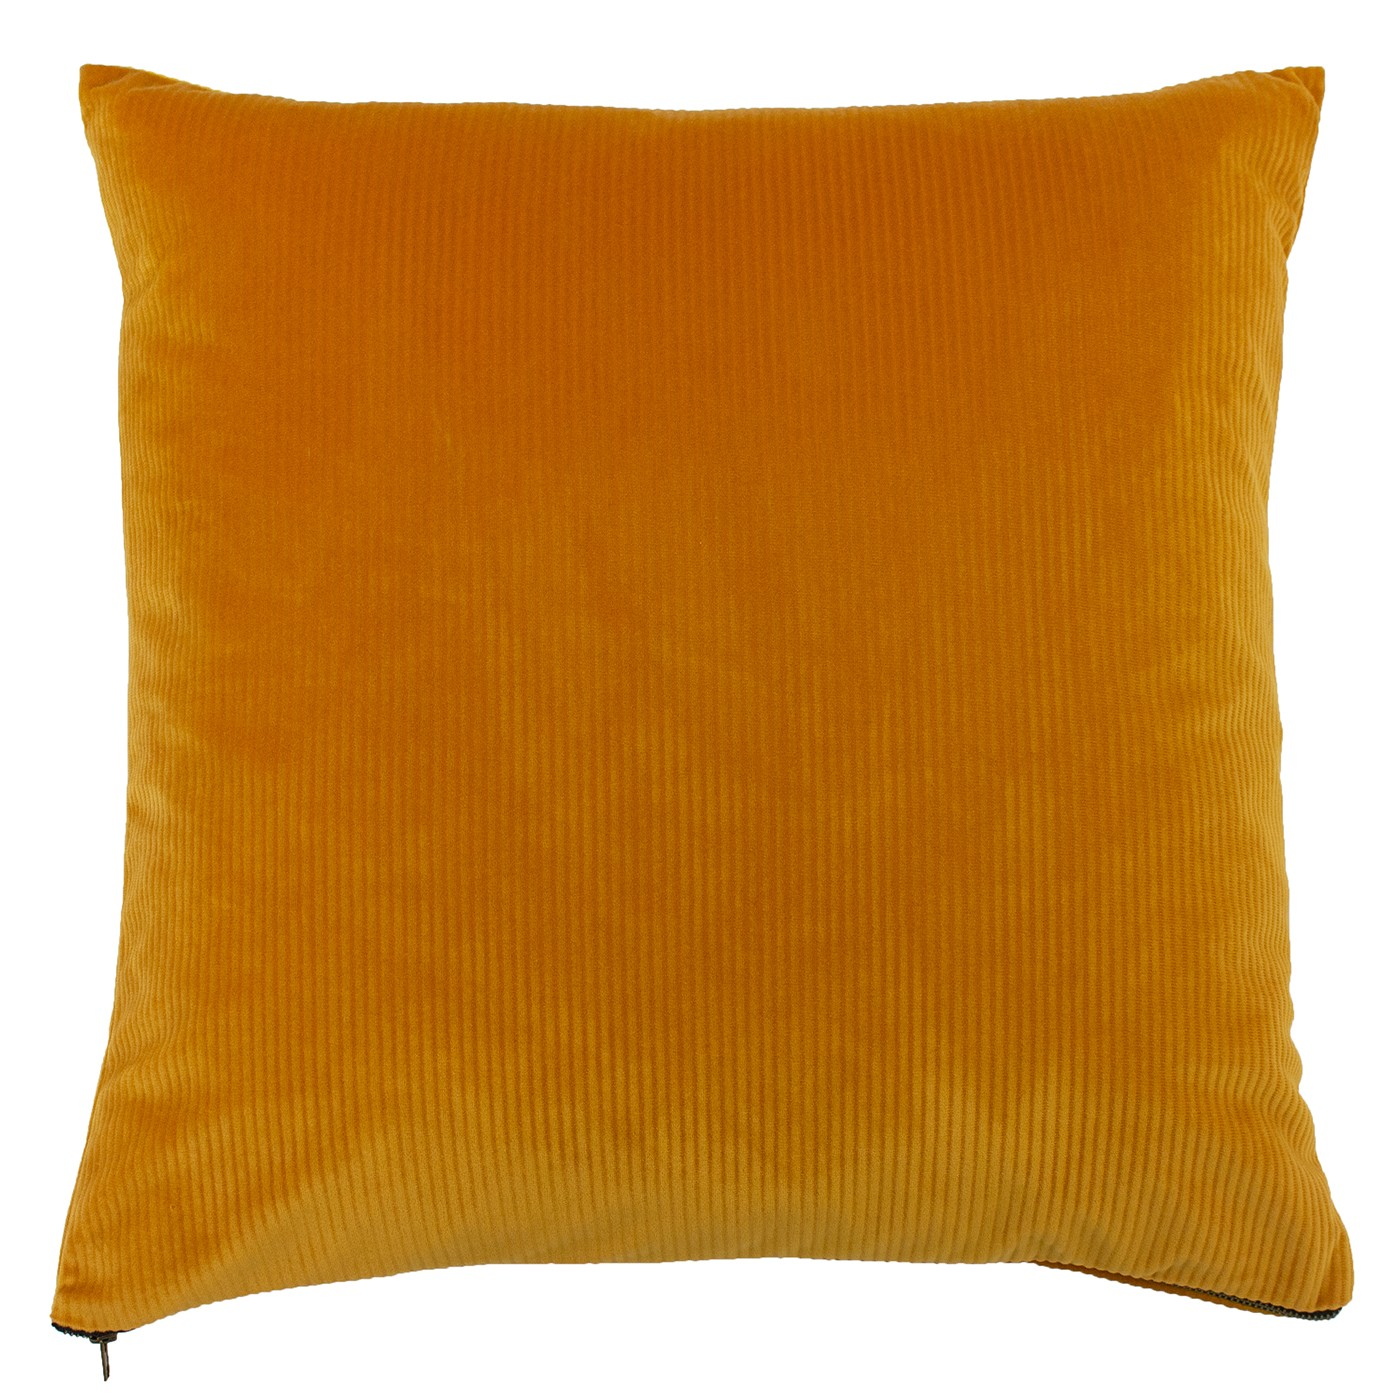 The Home Furnishings Company Aurora Ochre Velvet Corduroy Cushion 45x45cms